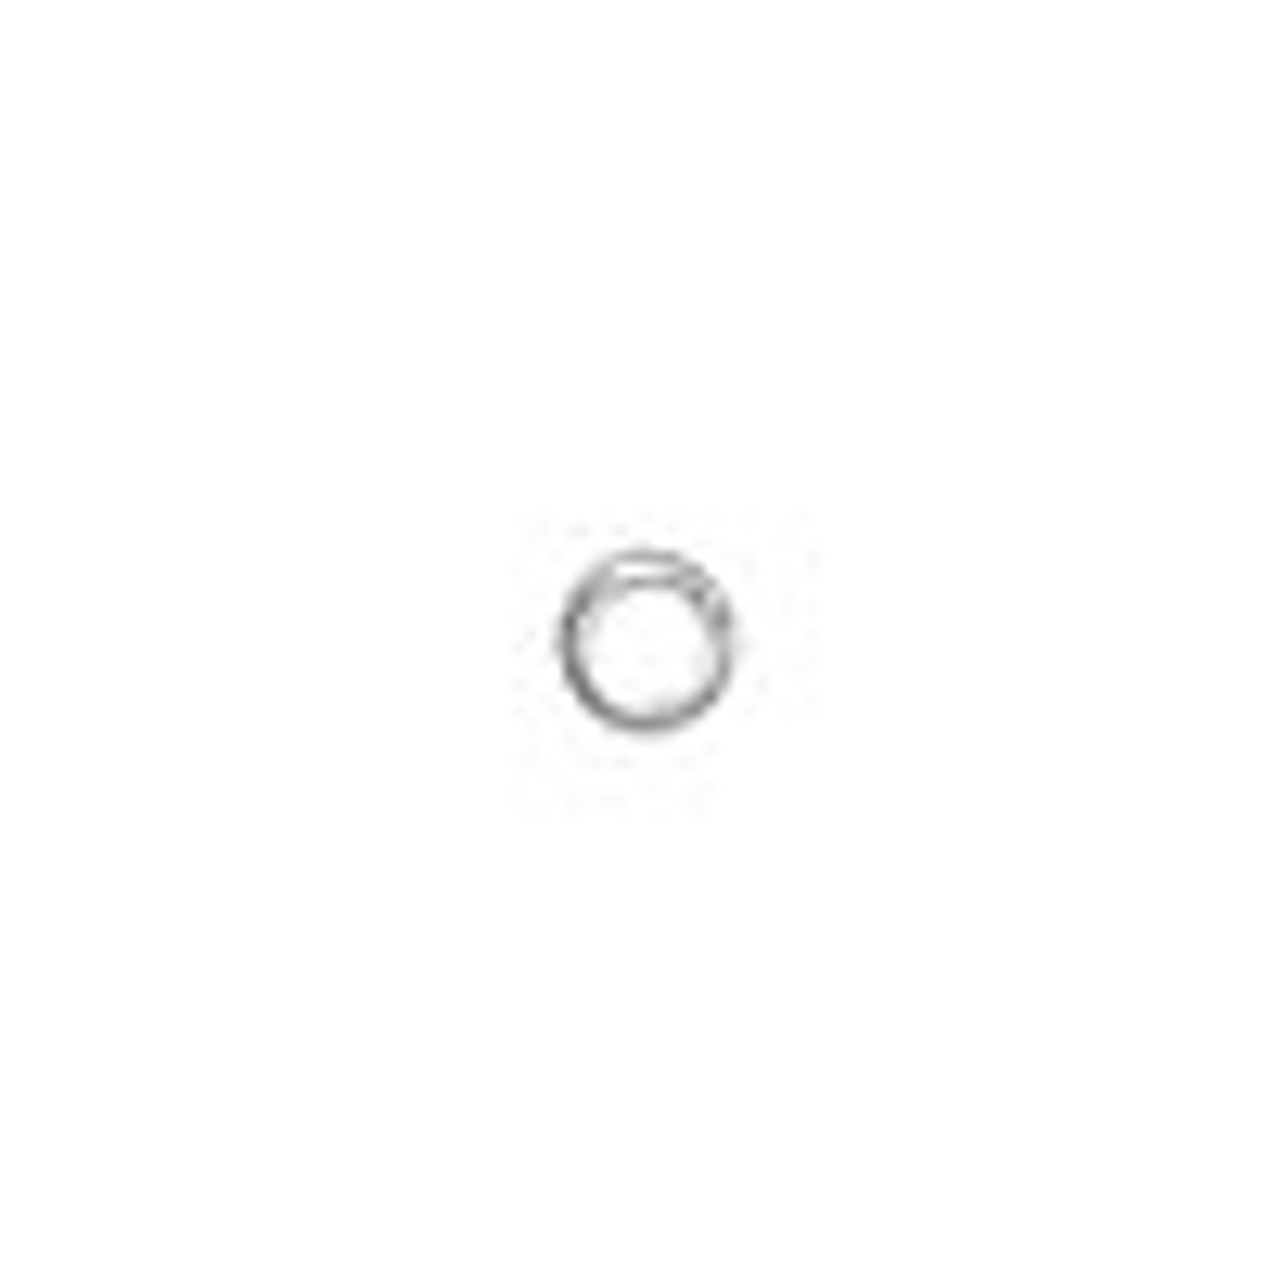 6mm Soldered Silver Plated Jump Rings (50 Pack)